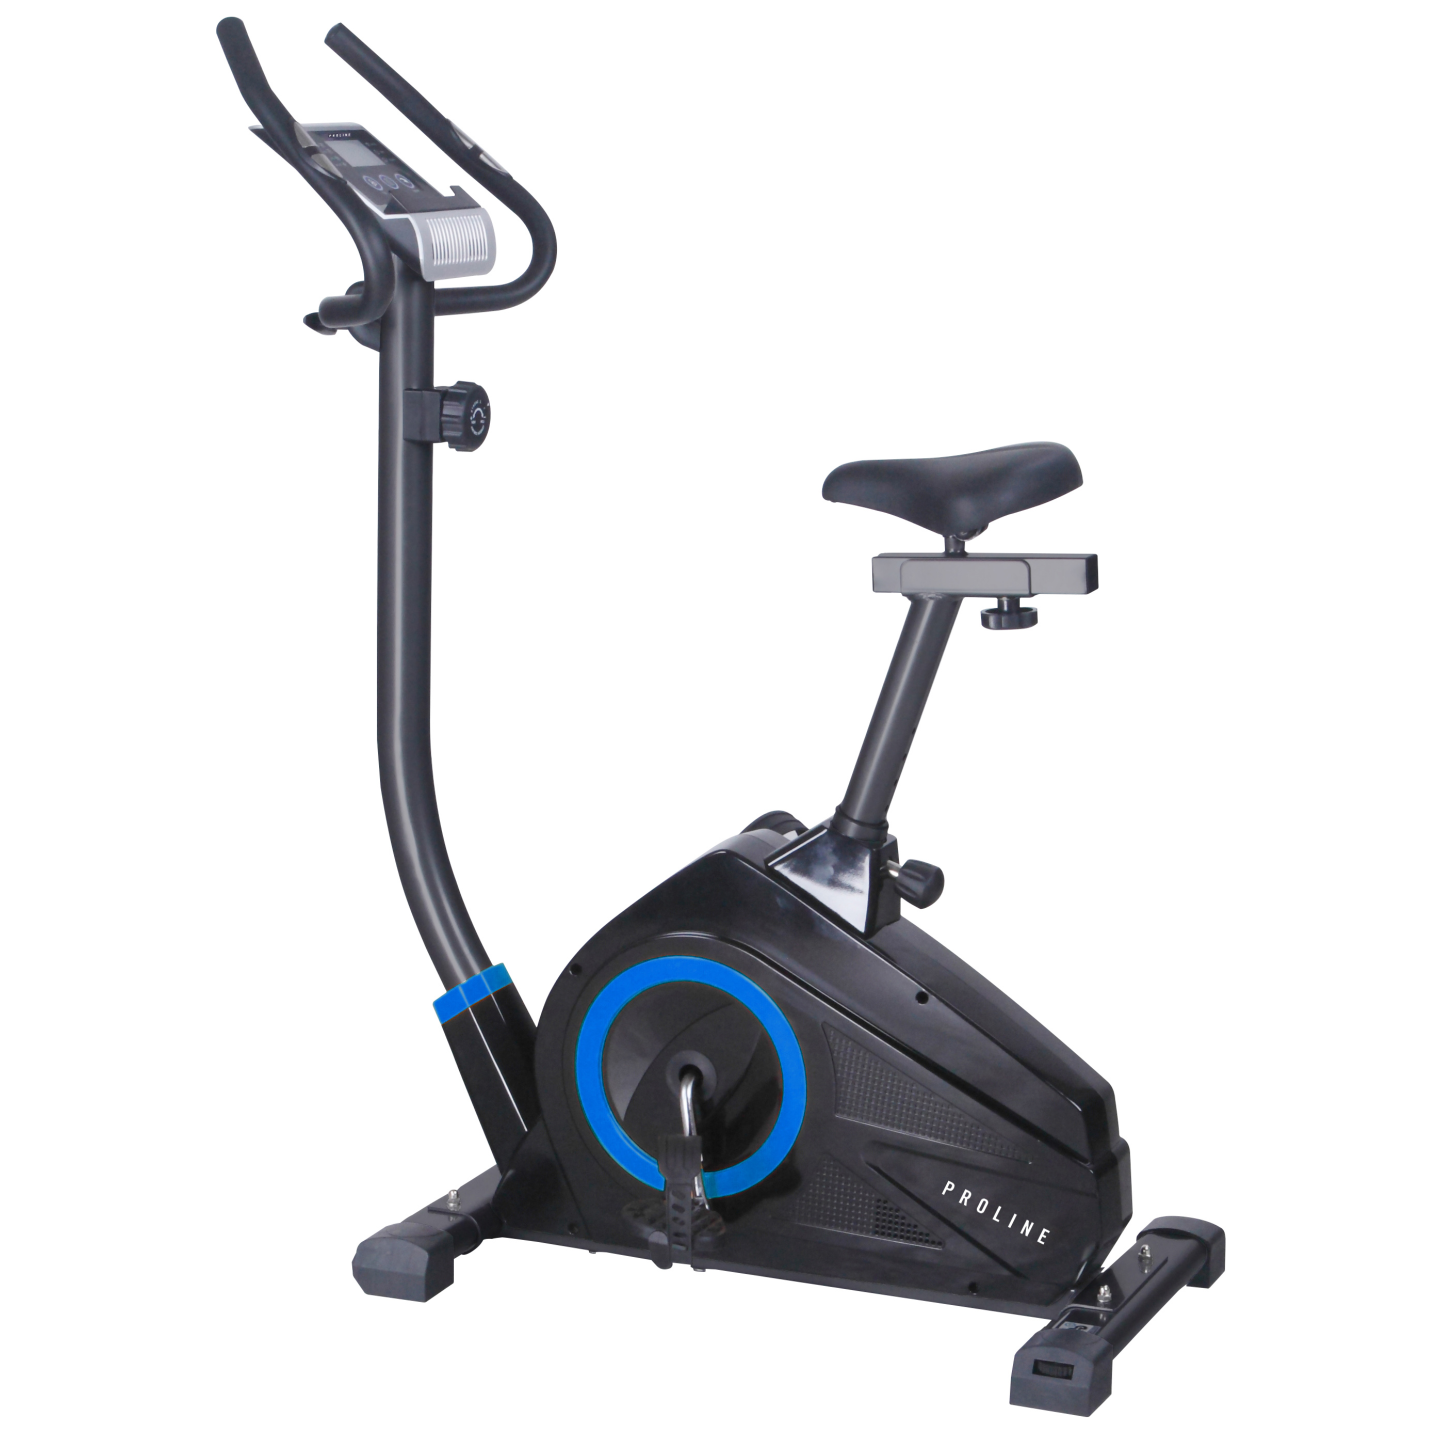 PROLINE 10700B UPRIGHT BIKE